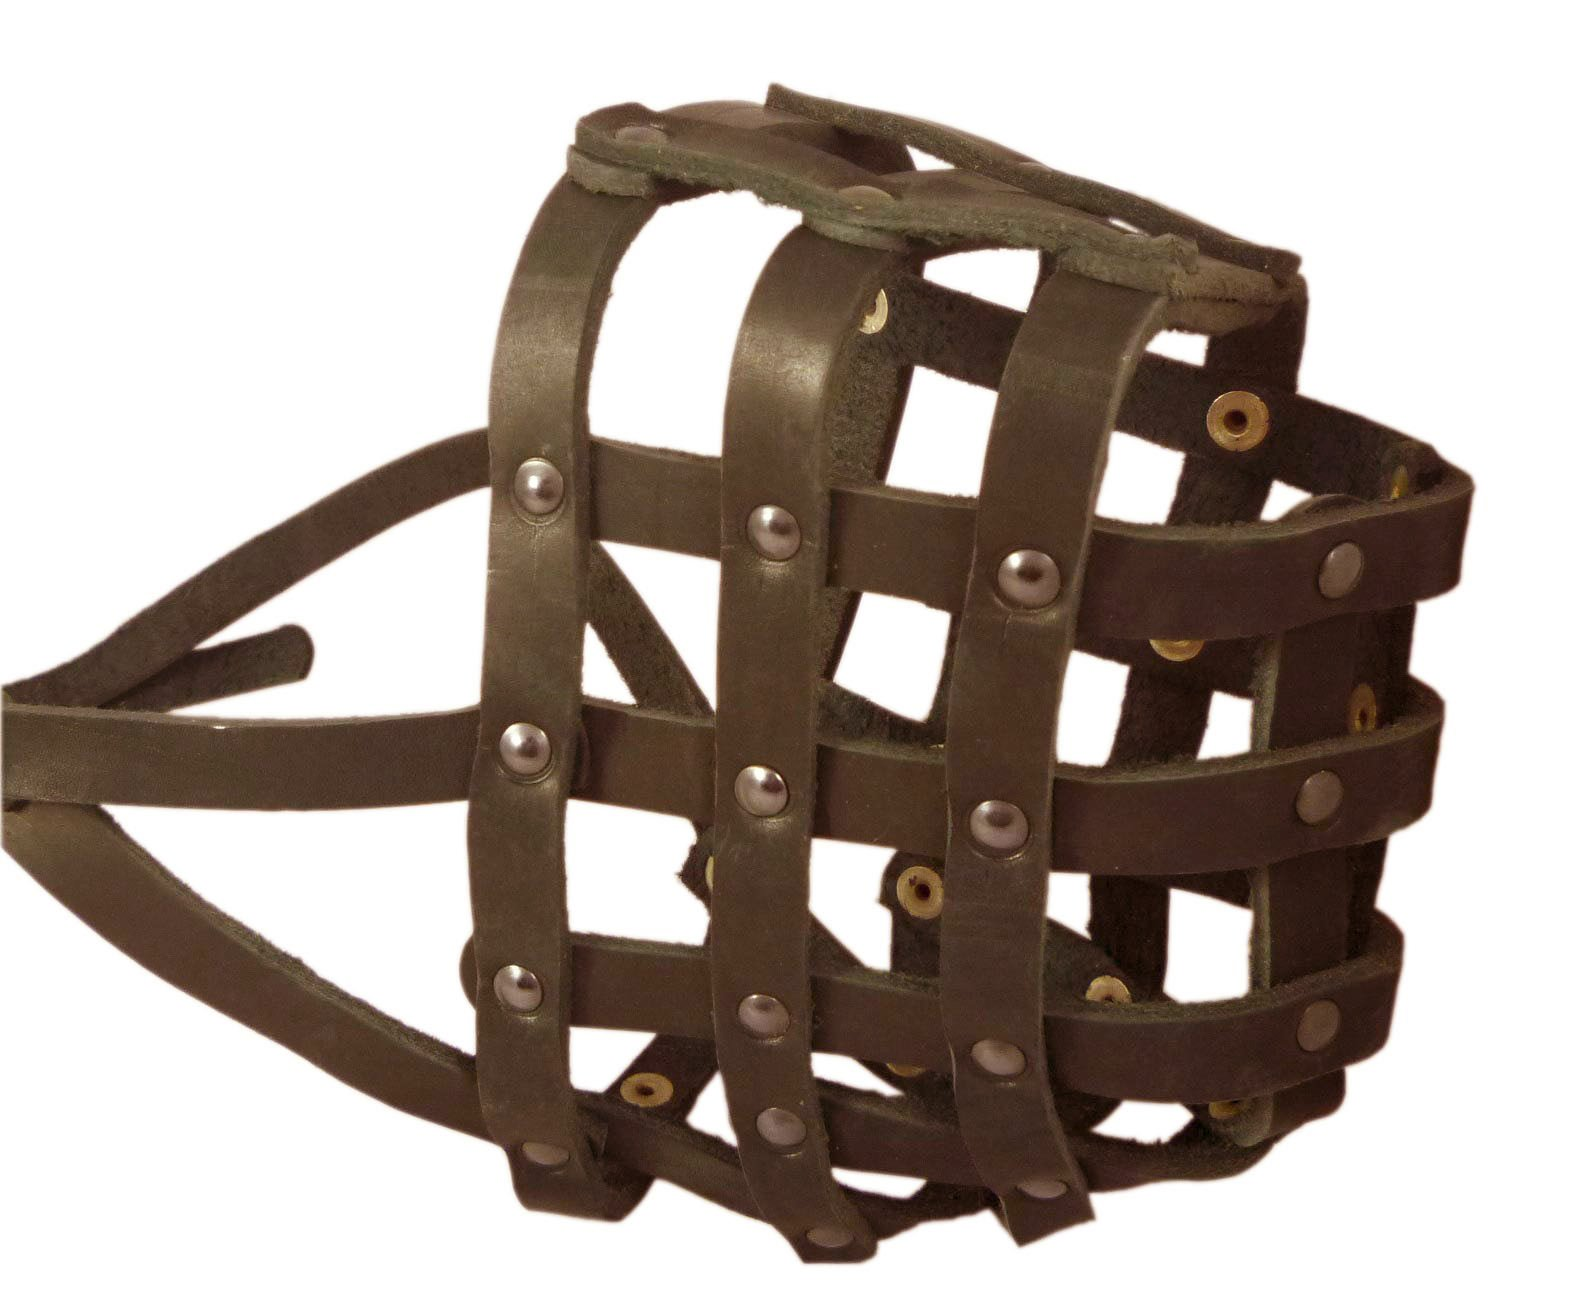 Real Leather Dog Basket Muzzle #115 Brown (Circumference 18'', Snout Length 4.7'') XXLarge Mastiff, Great Dane